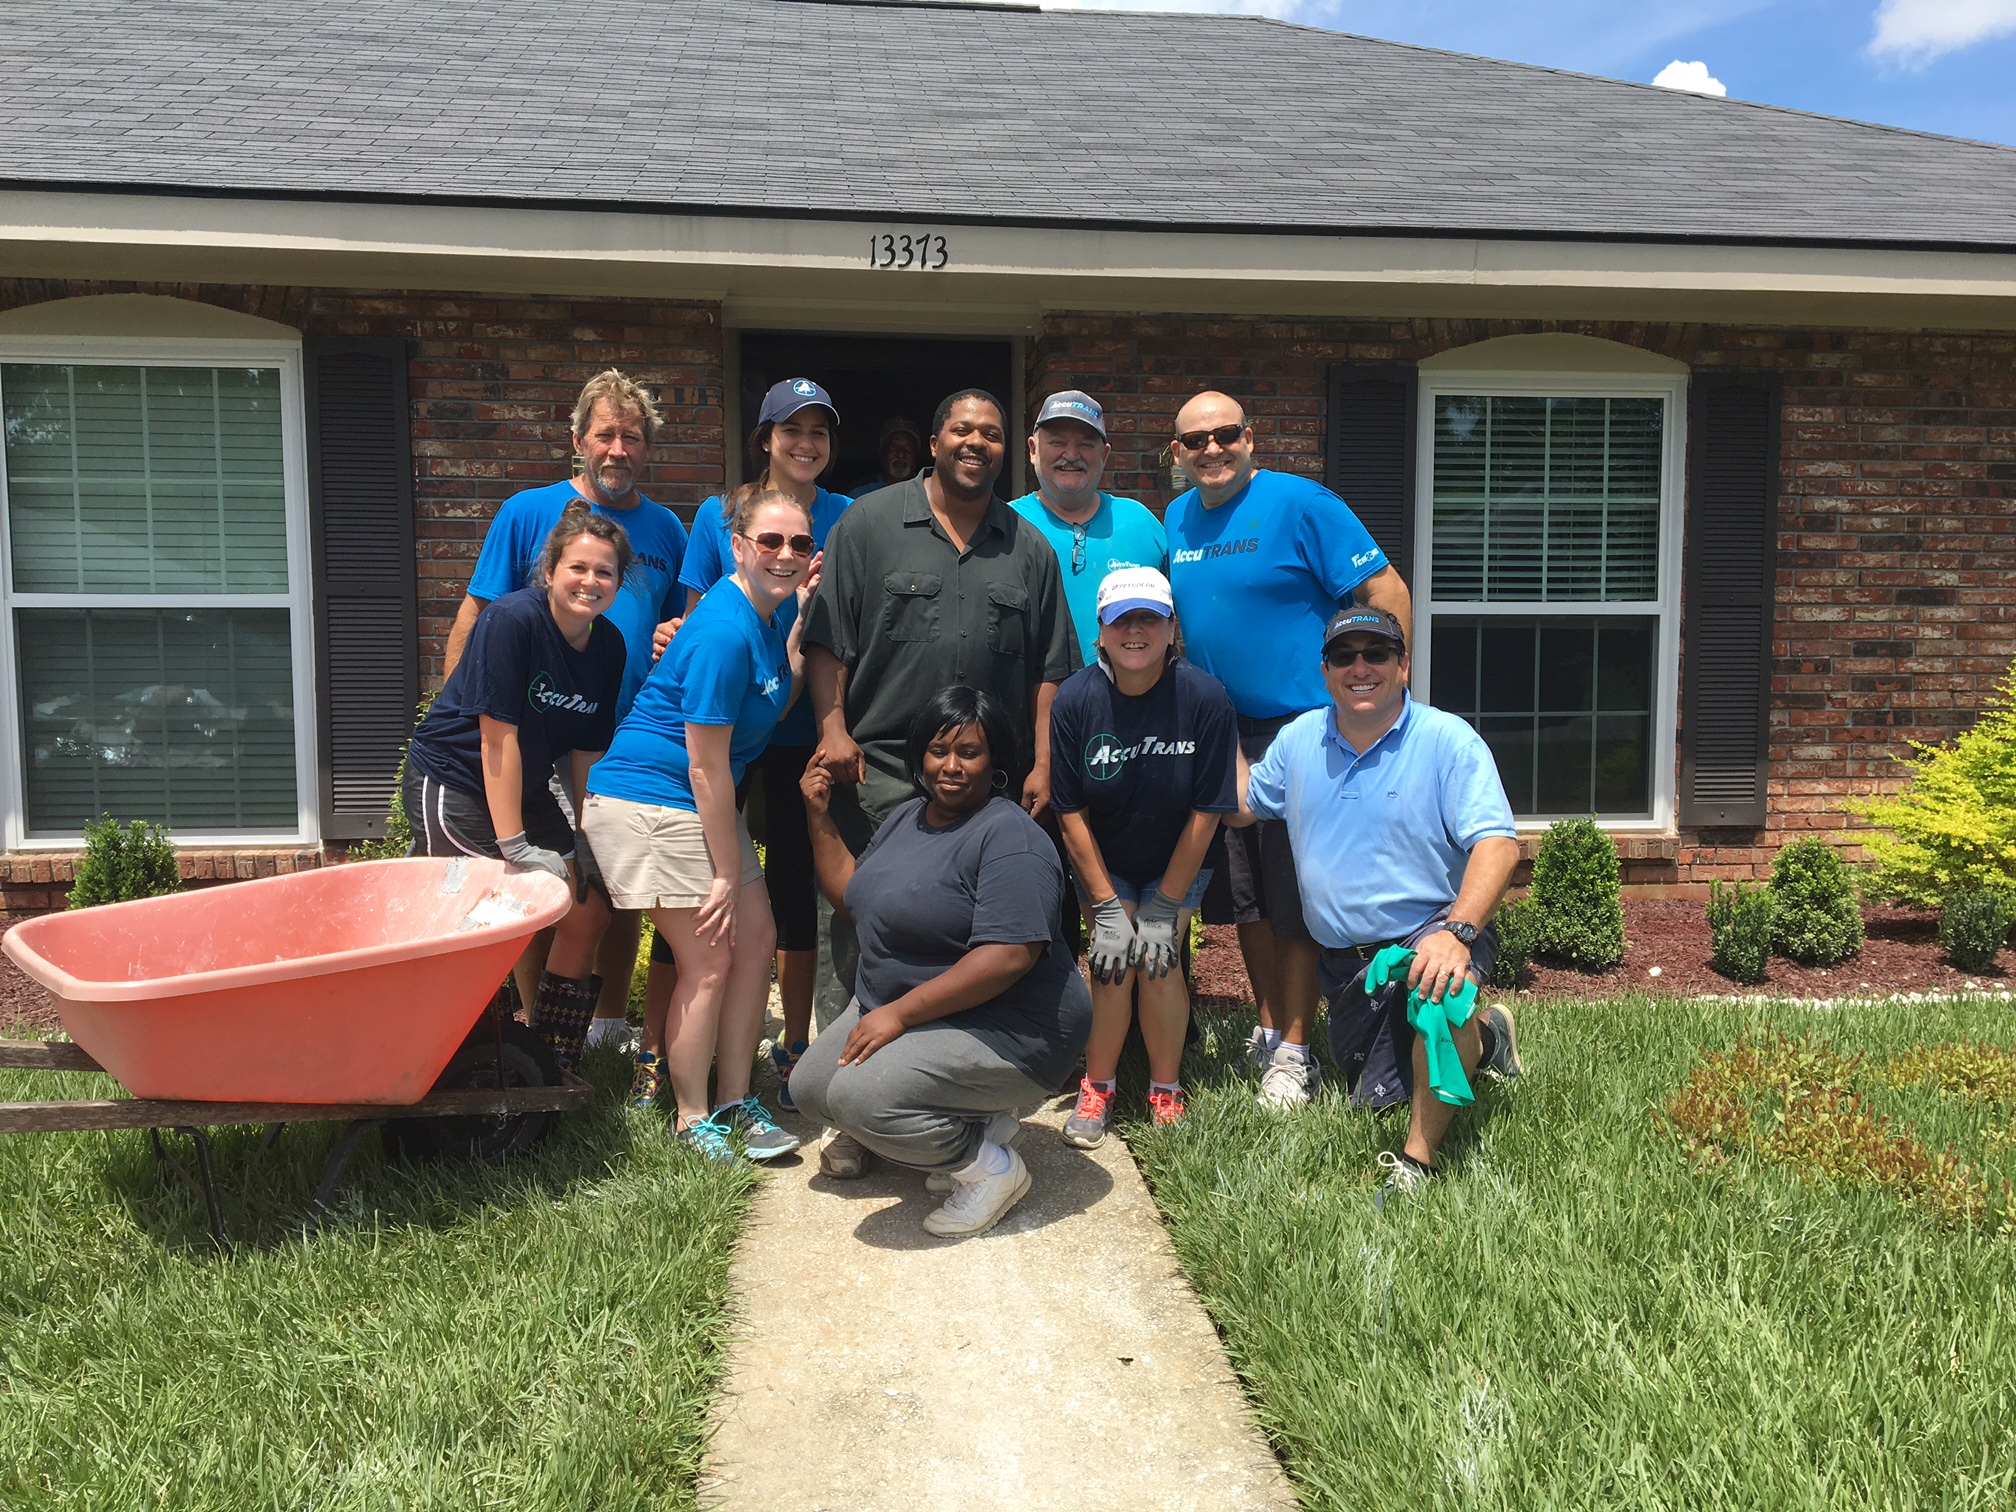 AccuTRANS shows true HEART through supporting family members after flood